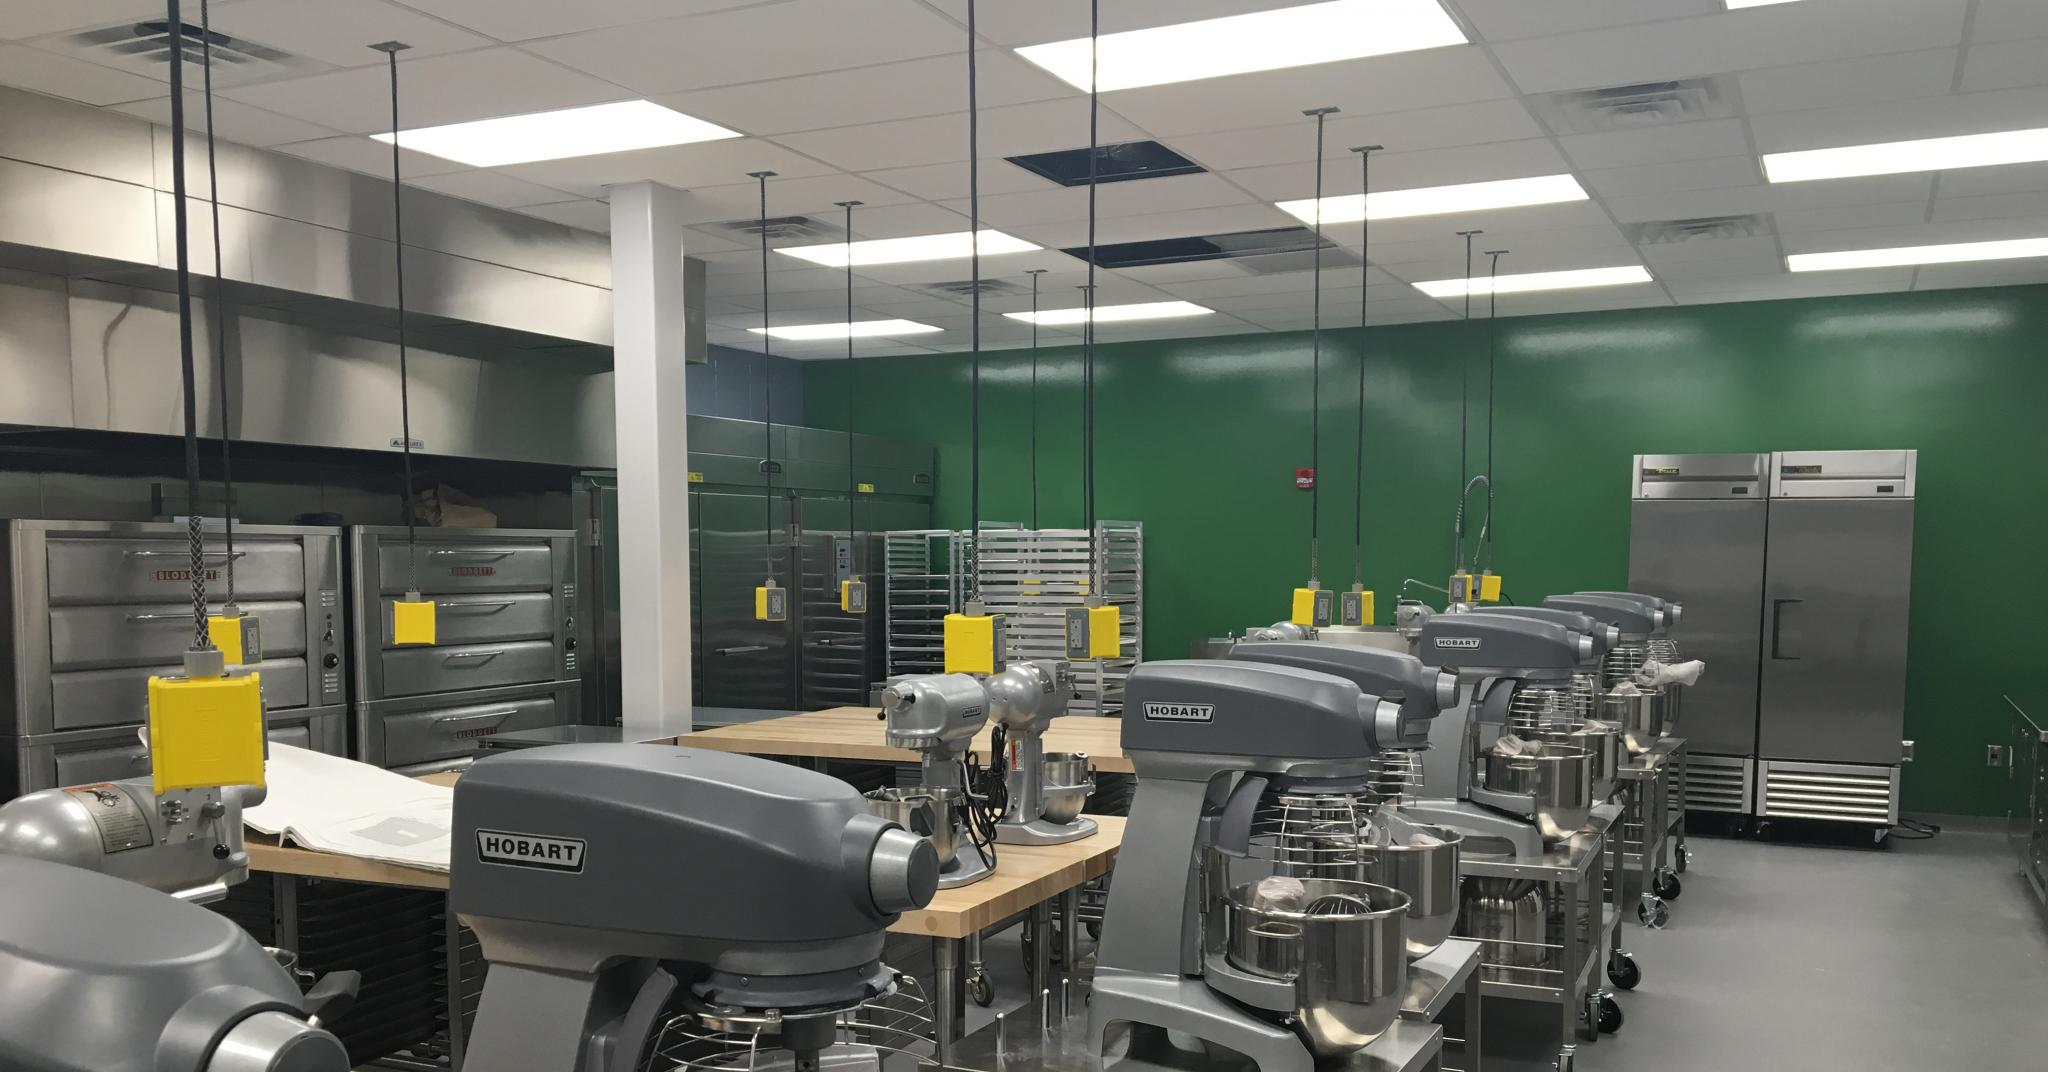 image of bakery equipment in a room with green walls